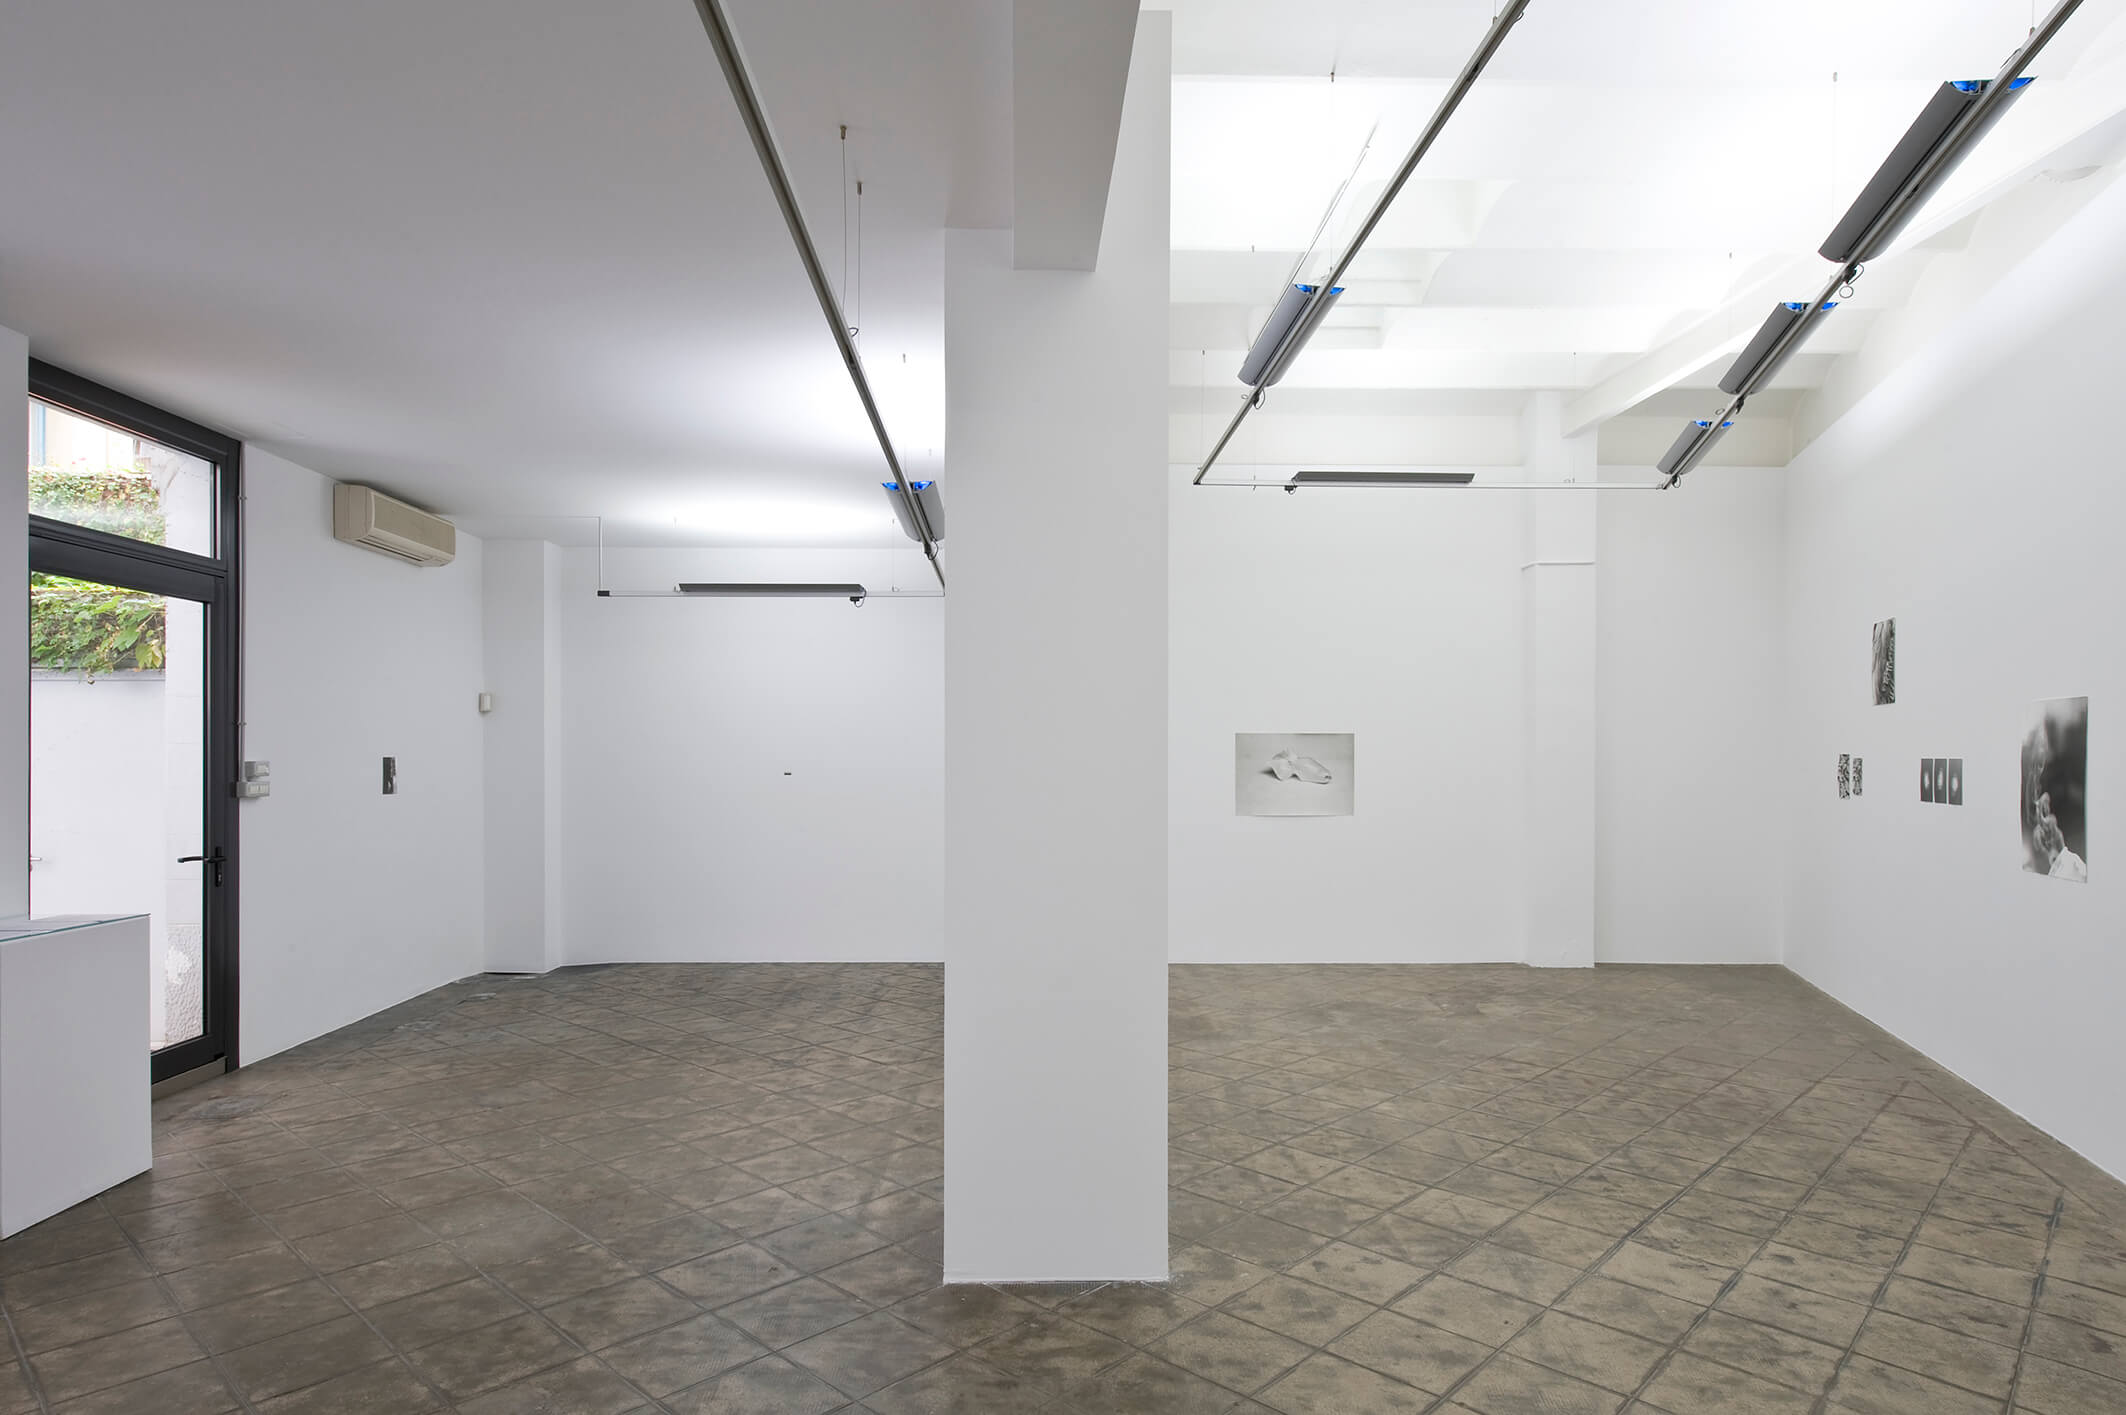 Installation view: Jochen Lempert, Projecte SD, Barcelona, 2014 | Jochen Lempert | ProjecteSD